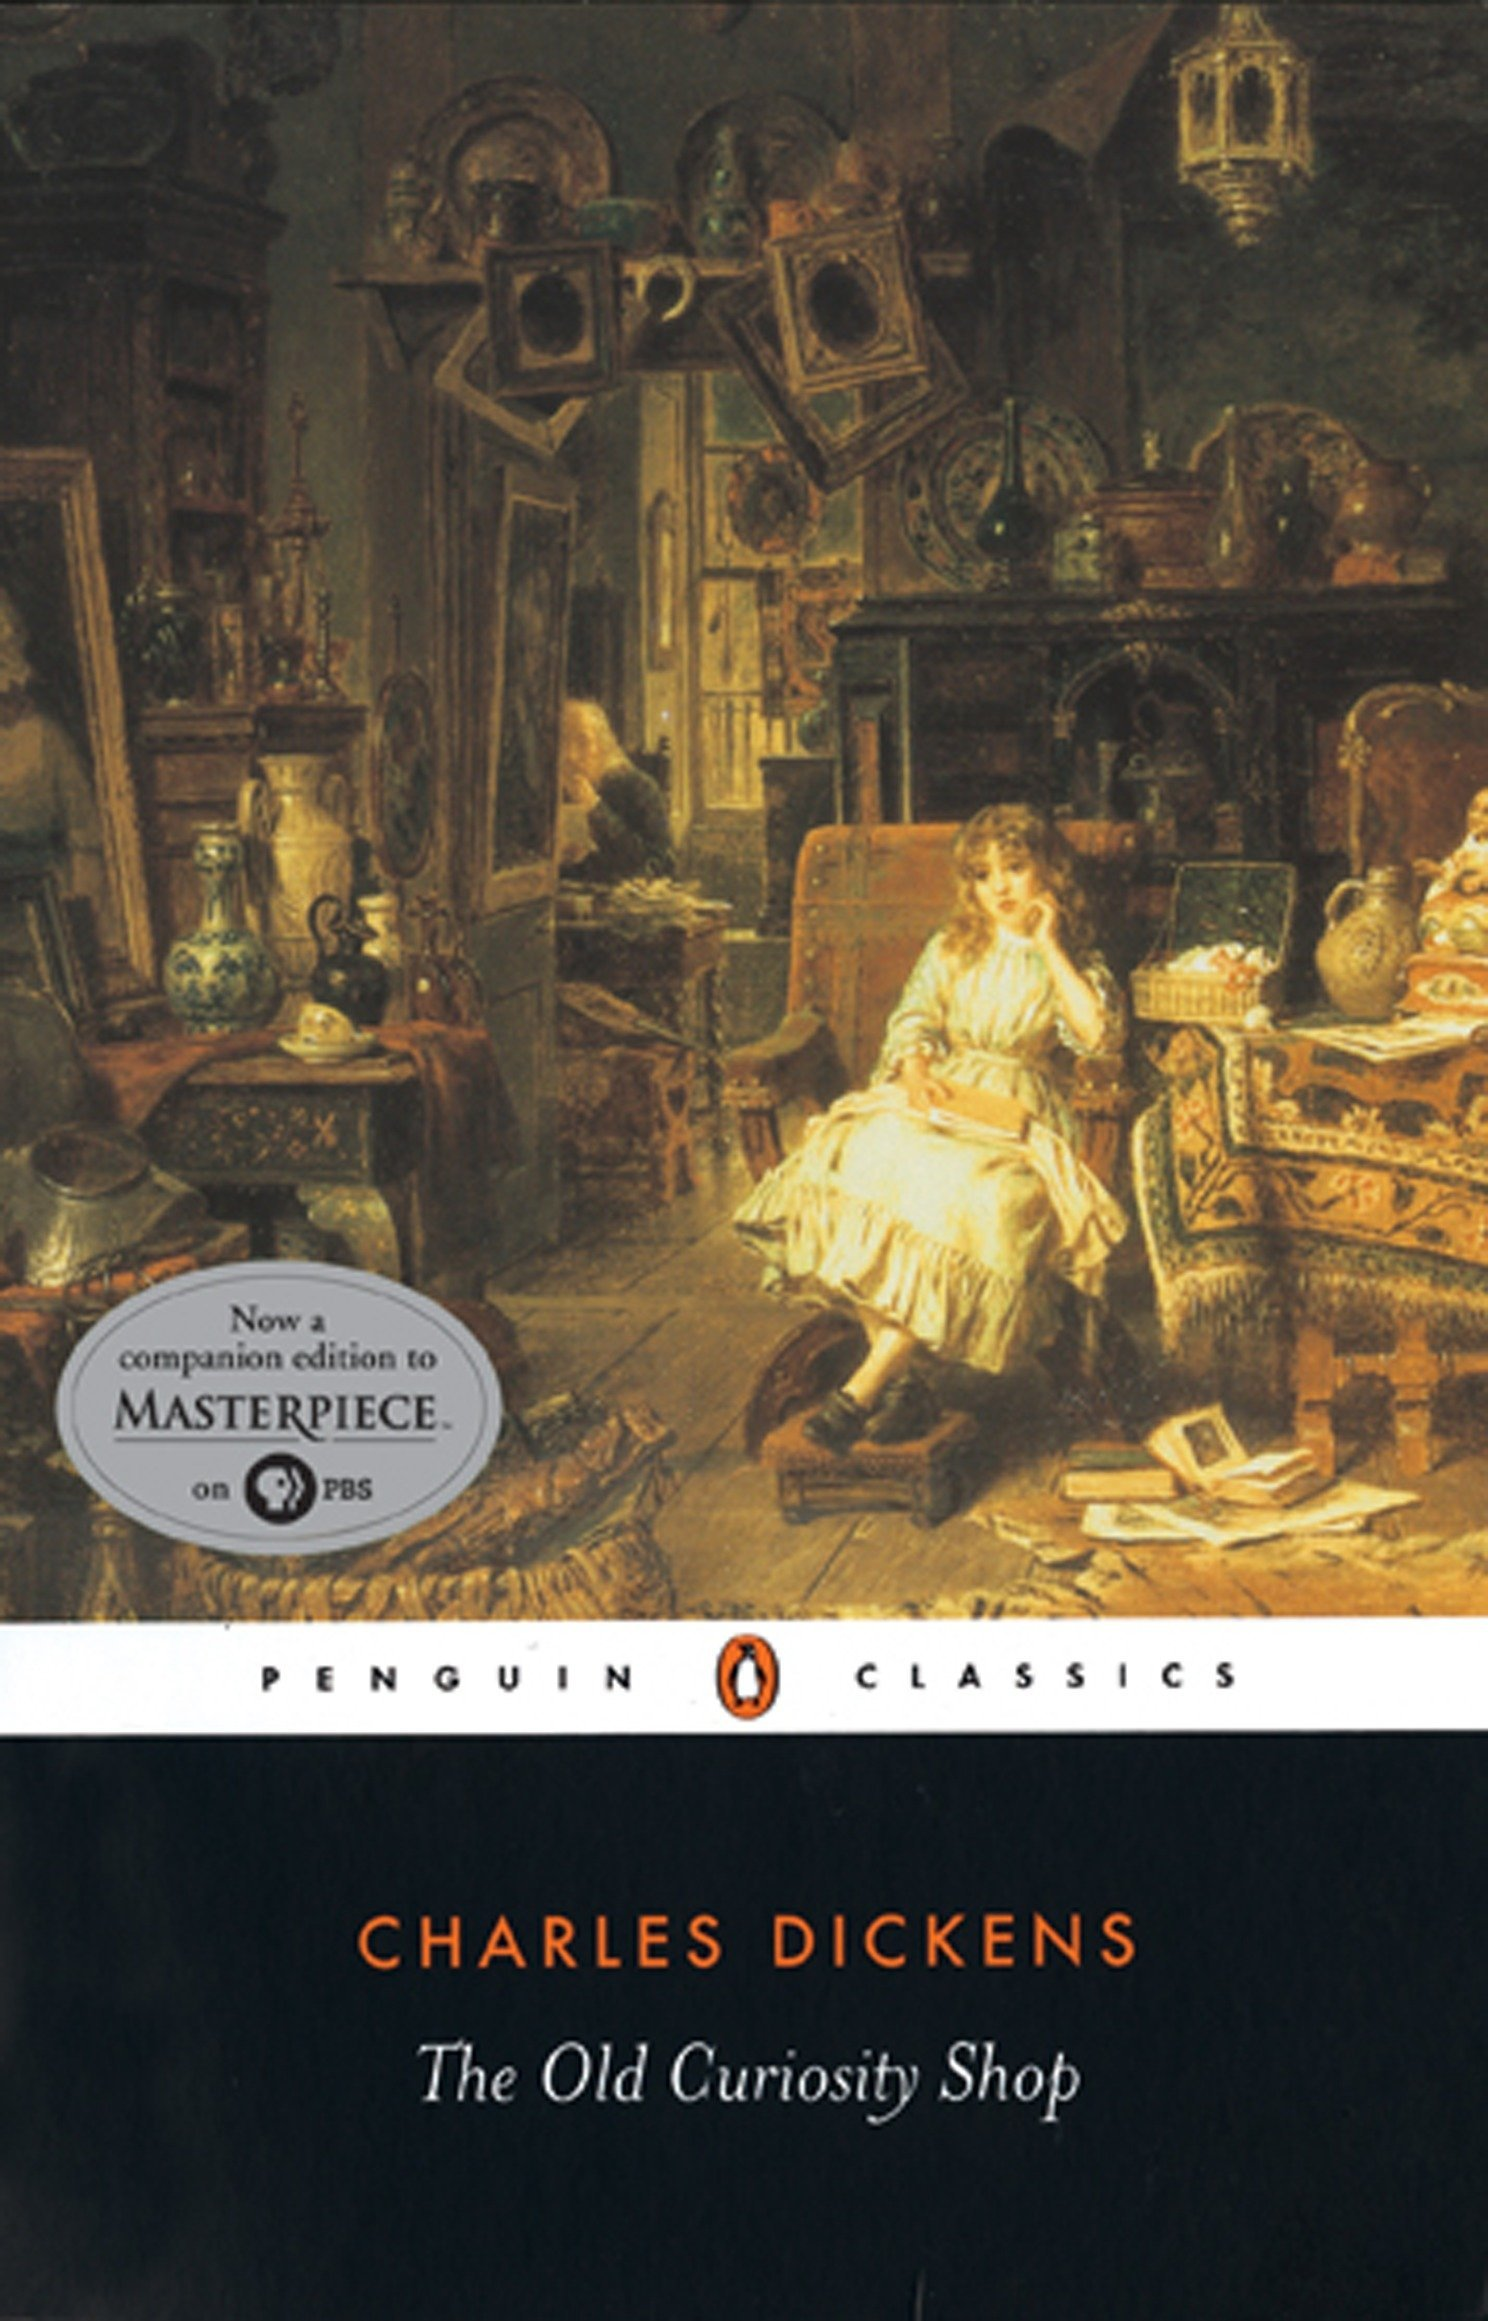 The Old Curiosity Shop (Penguin Classics): Dickens, Charles, Page, Norman:  9780140437423: Amazon.com: Books